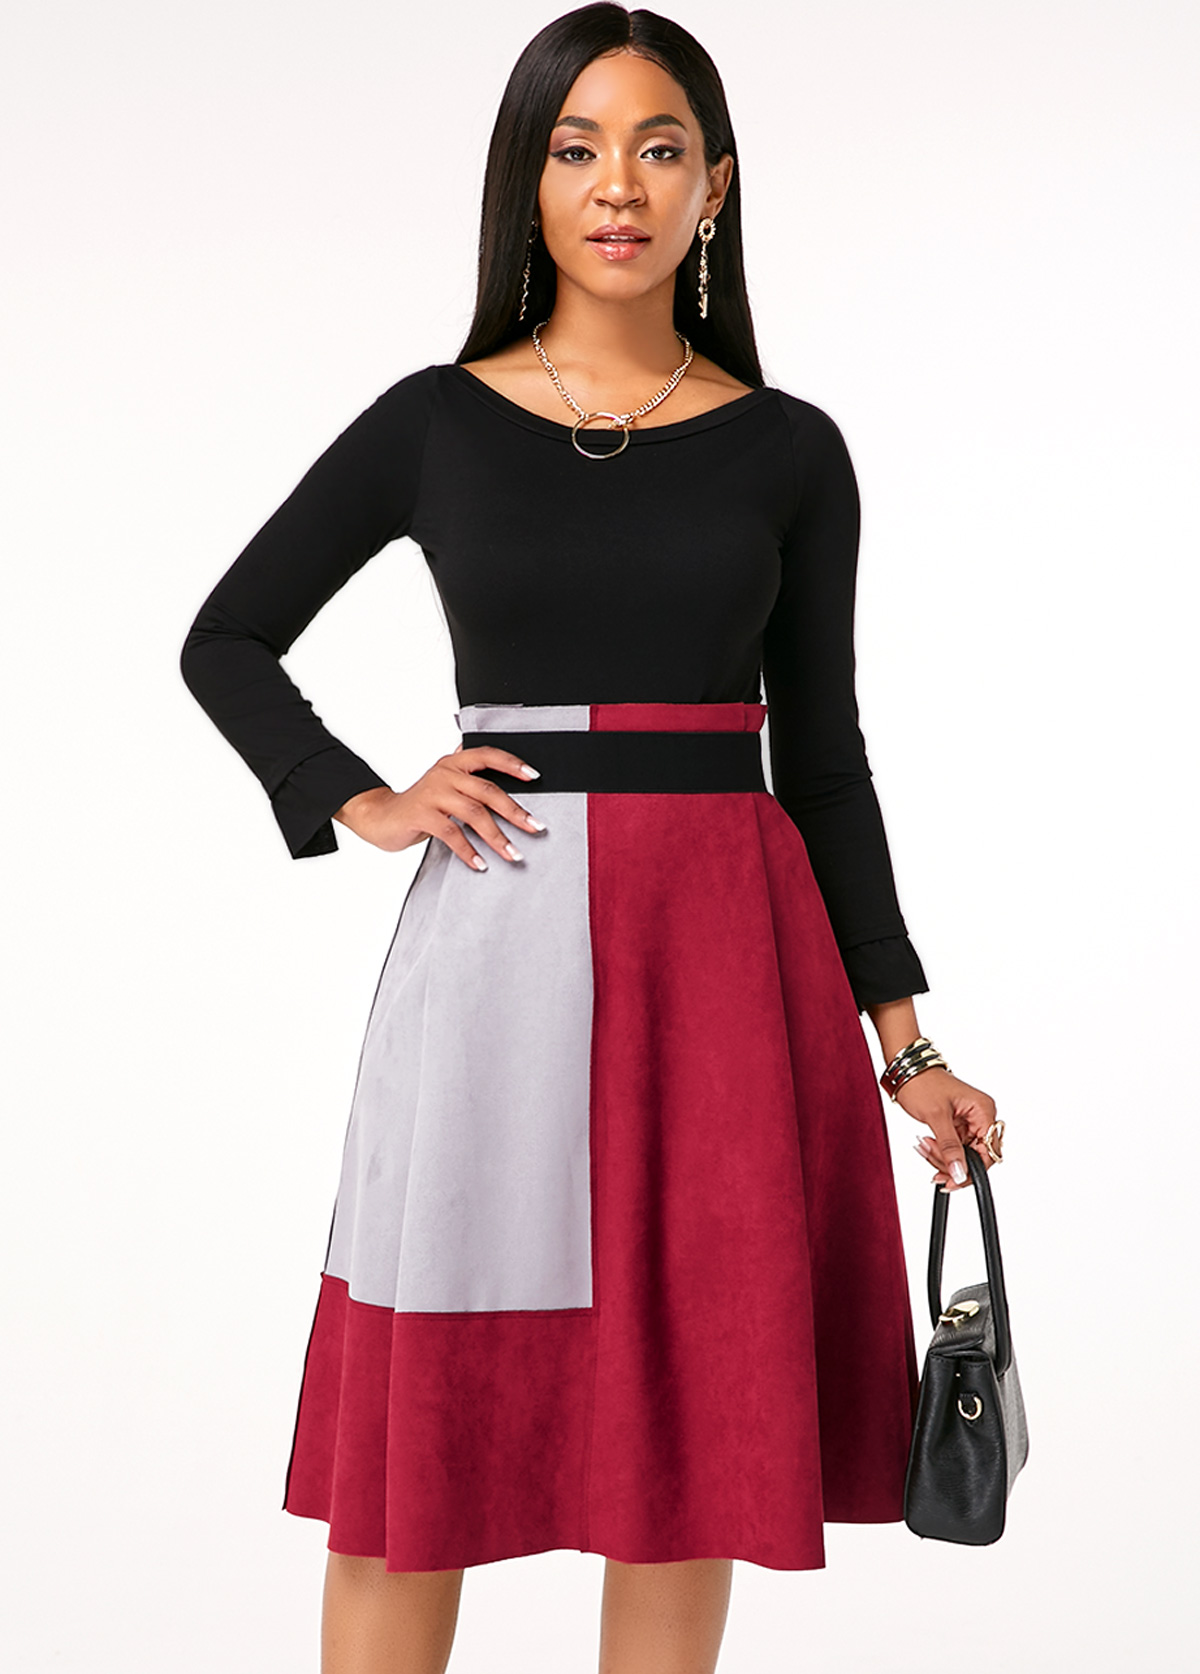 Long Sleeve Round Neck Top and Contrast Skirt